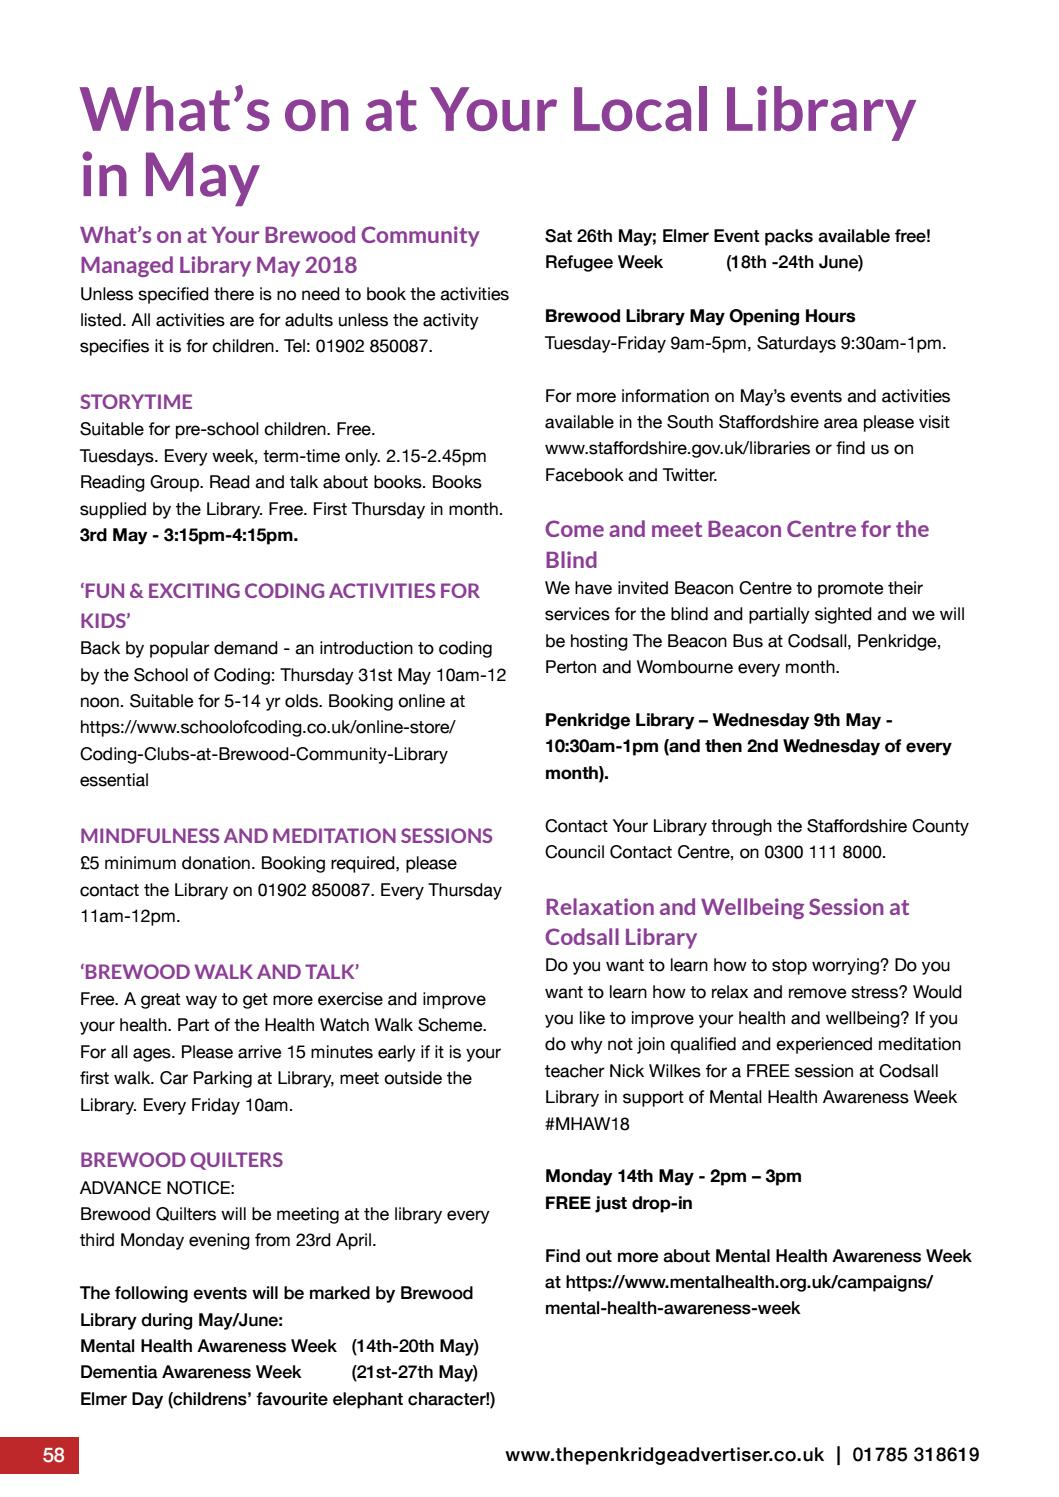 By Popular Demand Another Free Talk At >> The Penkridge Advertiser May 2018 By The Penkridge Advertiser Issuu